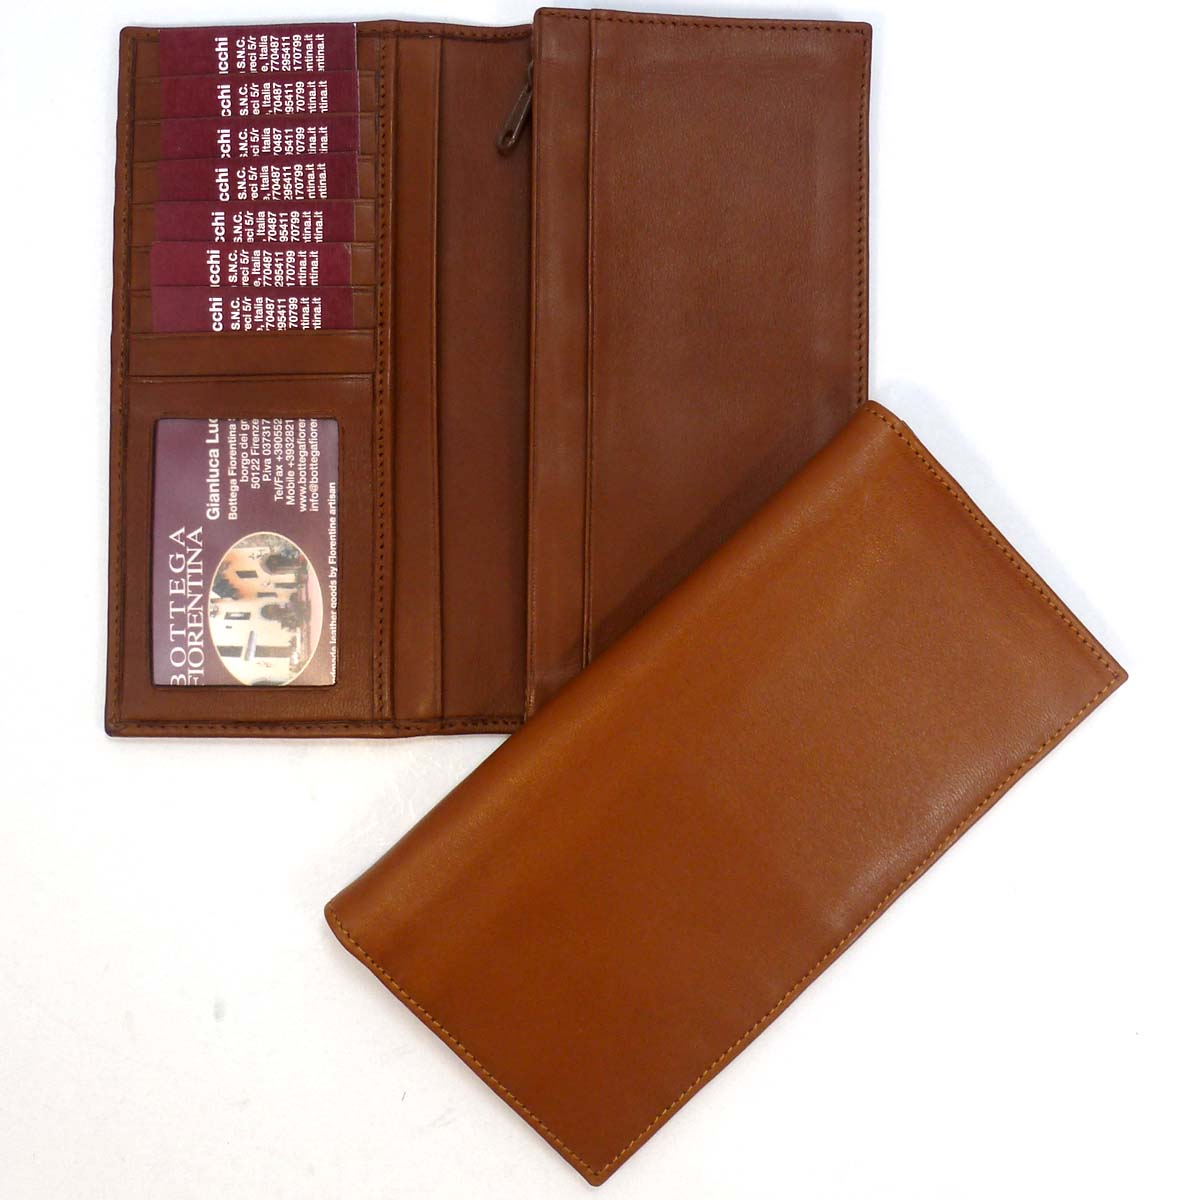 1353 long pocket wallet 7 slots by Bottega Fiorentina